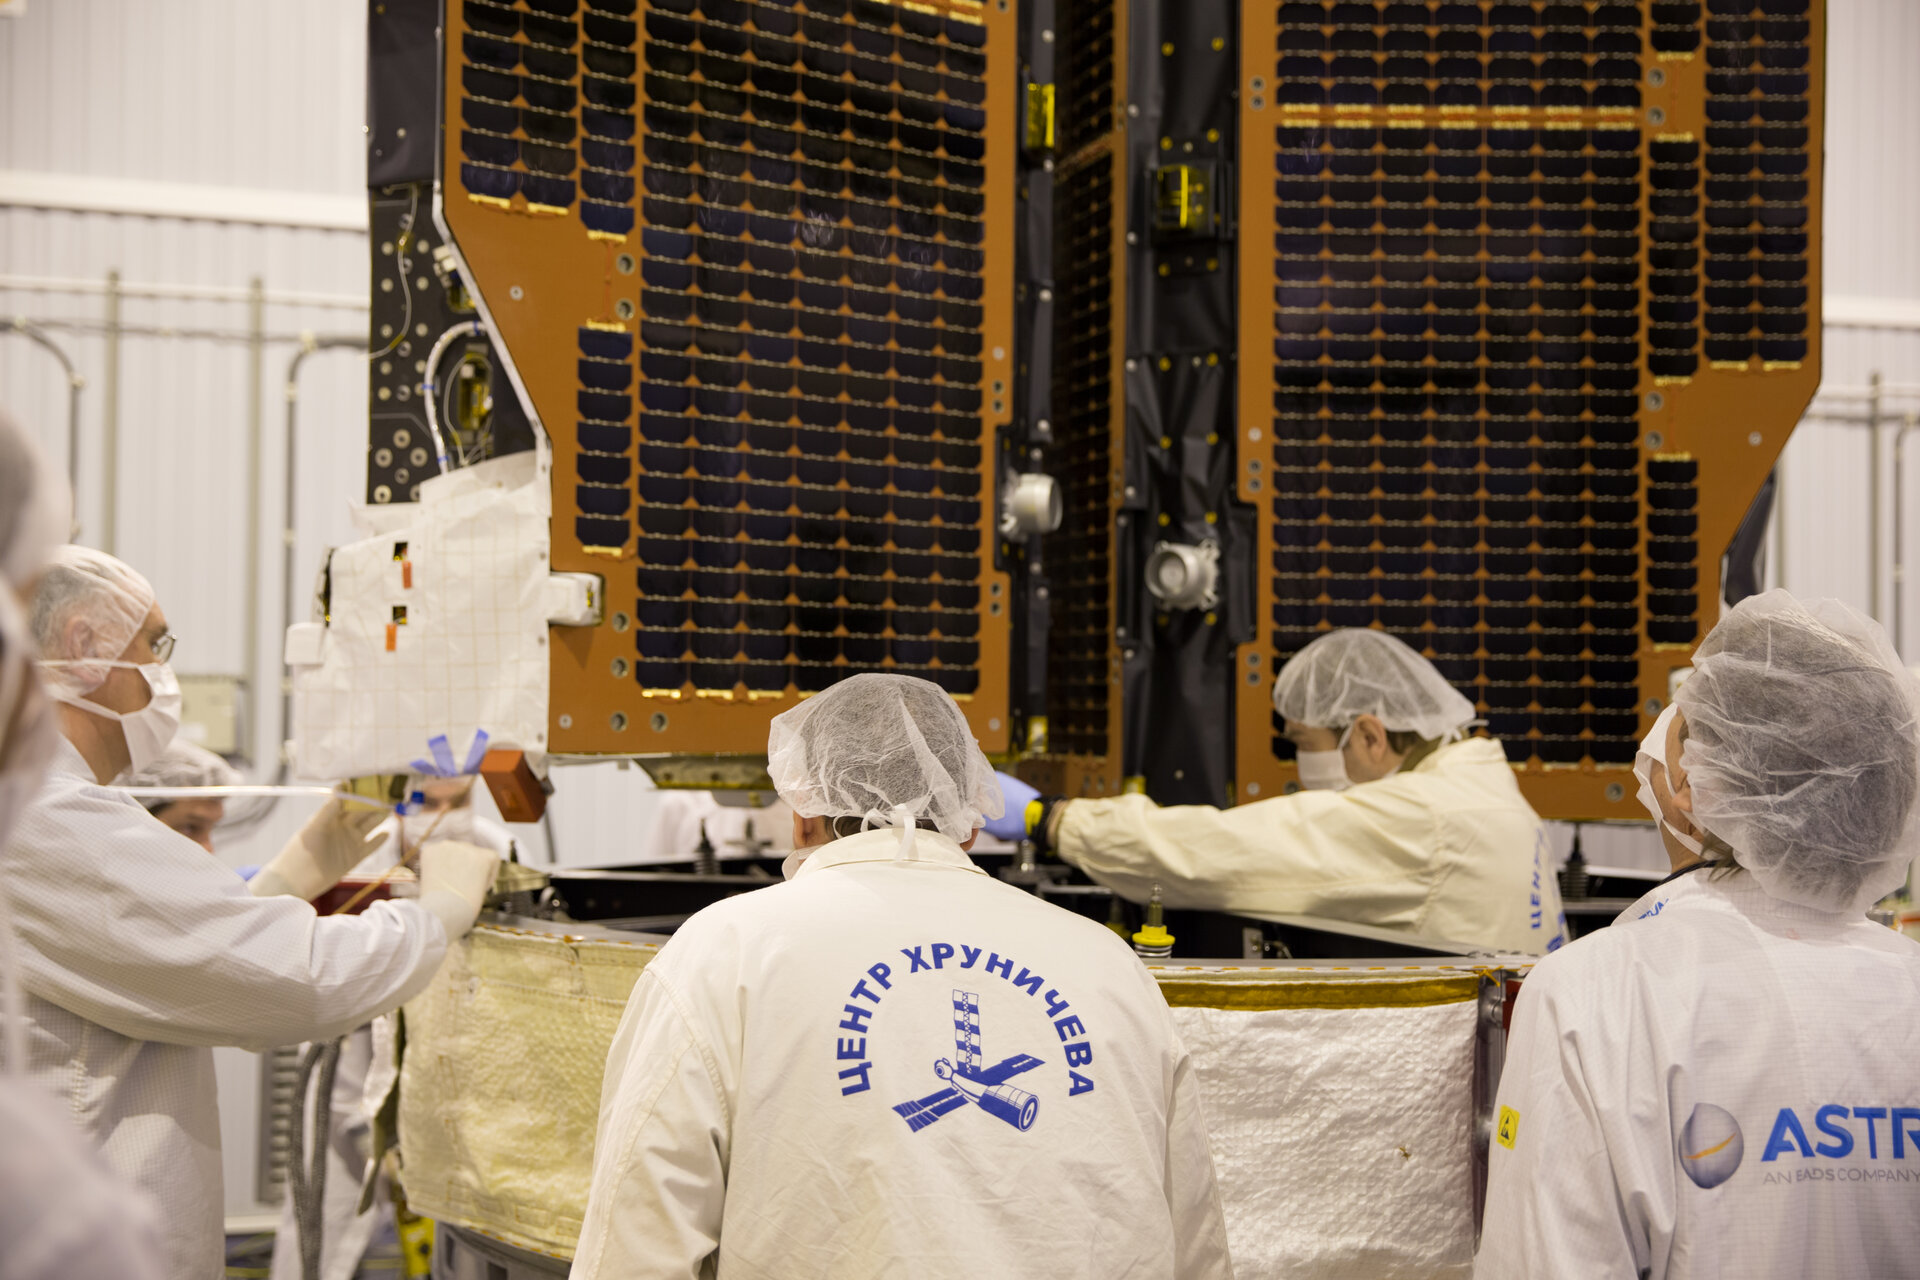 Positioning the second Swarm satellite on the launch adapter